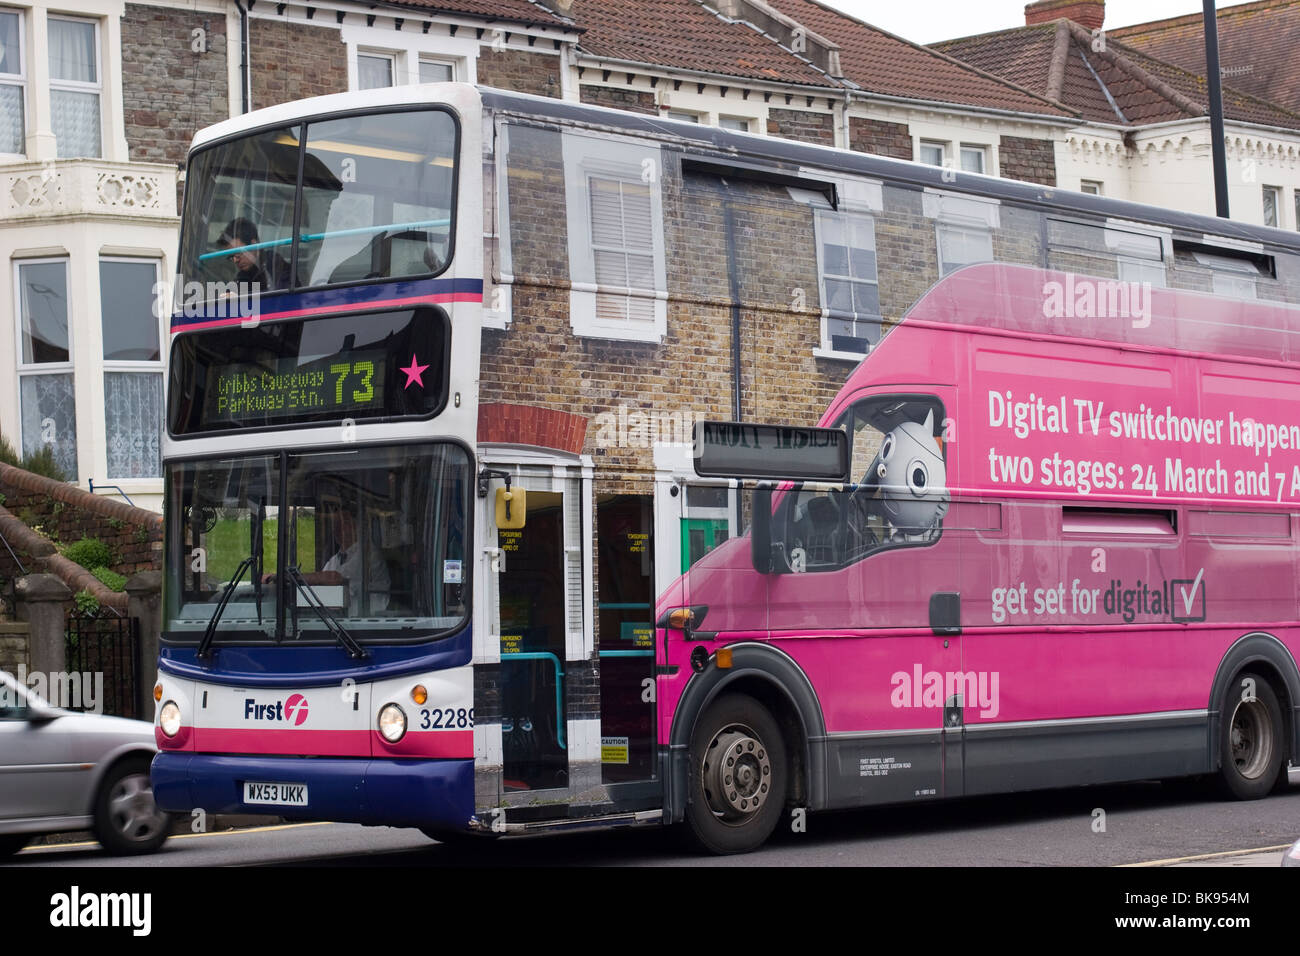 A bus with a digital TV switchover advert all over it, blends into Gloucester Road, Bristol, England. - Stock Image